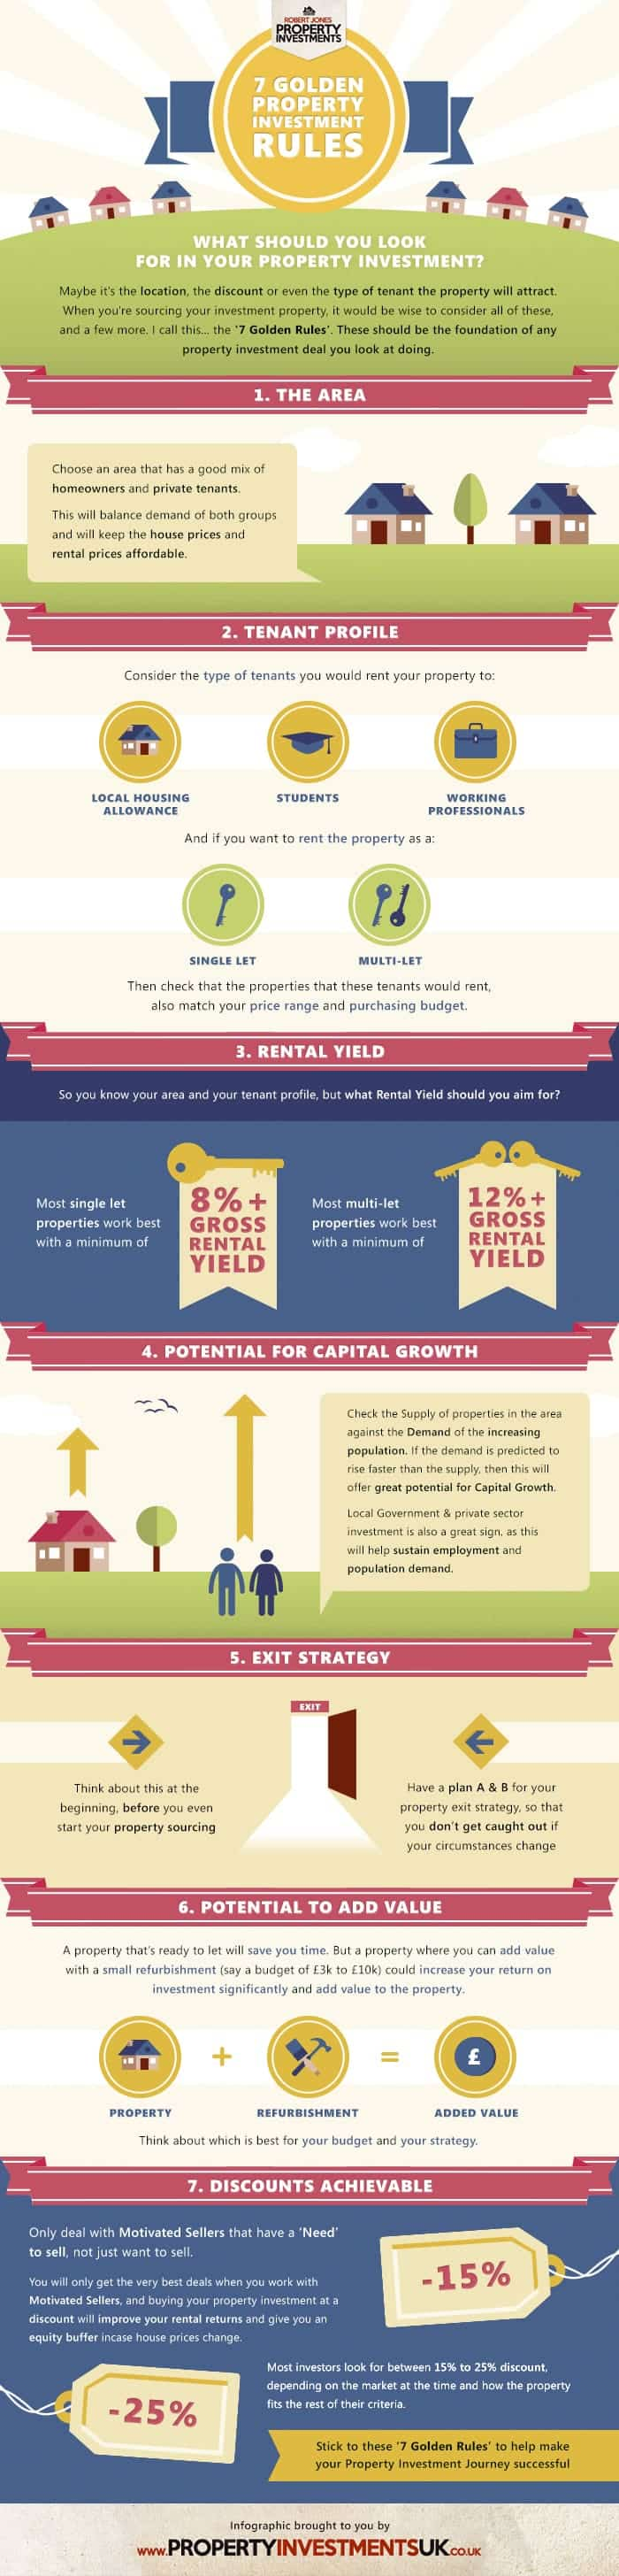 7 Golden Rules For Property Investment Strategy